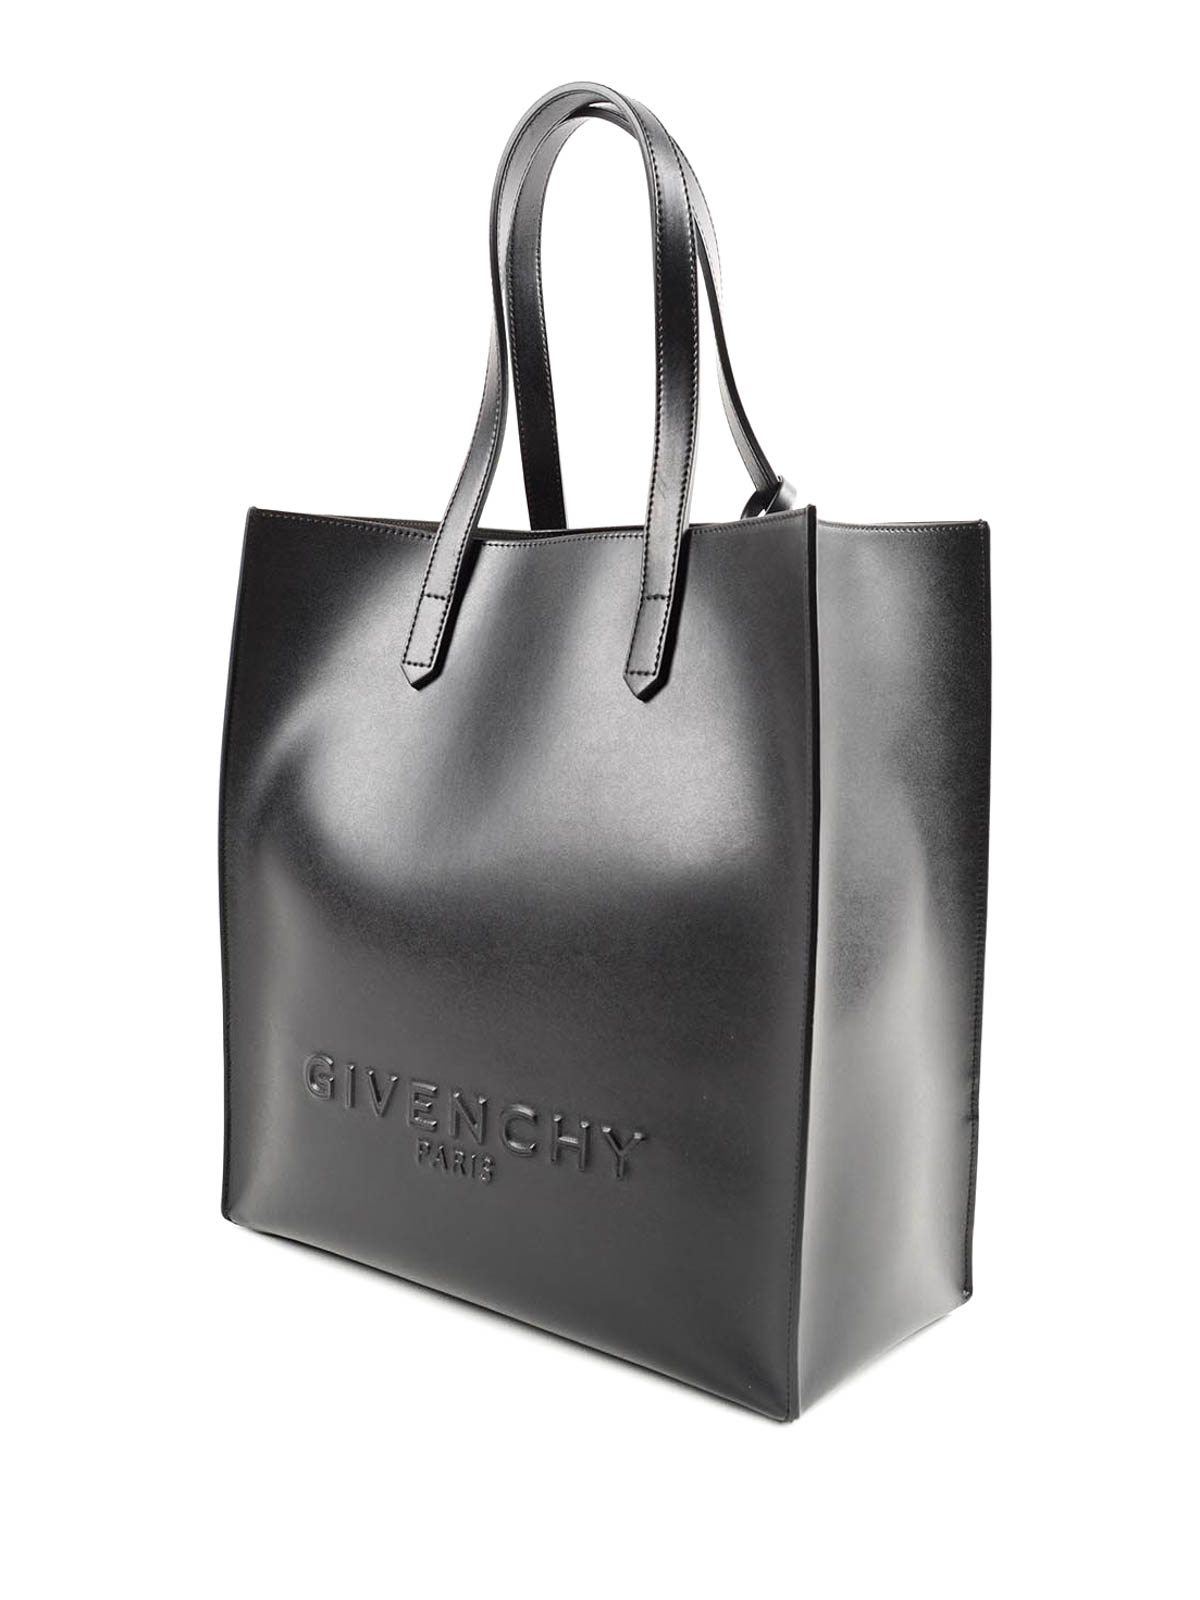 Givenchy Totes Bags Online Embossed Logo Leather Tote